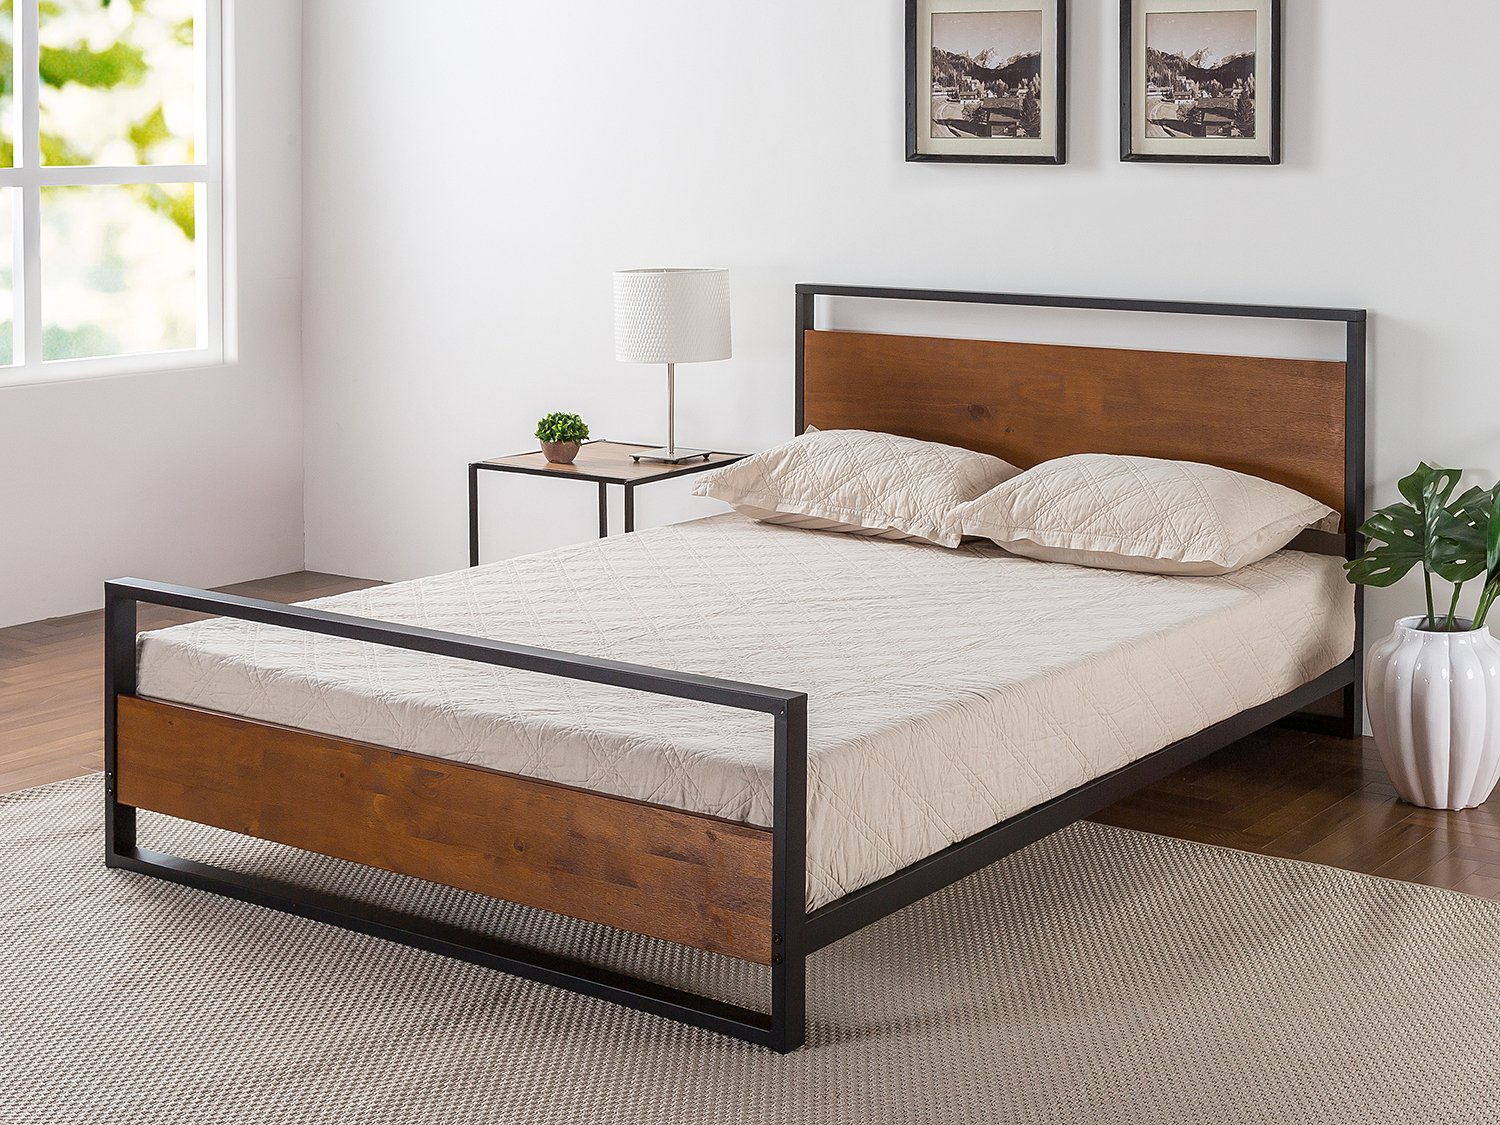 Zinus Ironline Metal and Wood Platform Bed with Headboard and Foot board